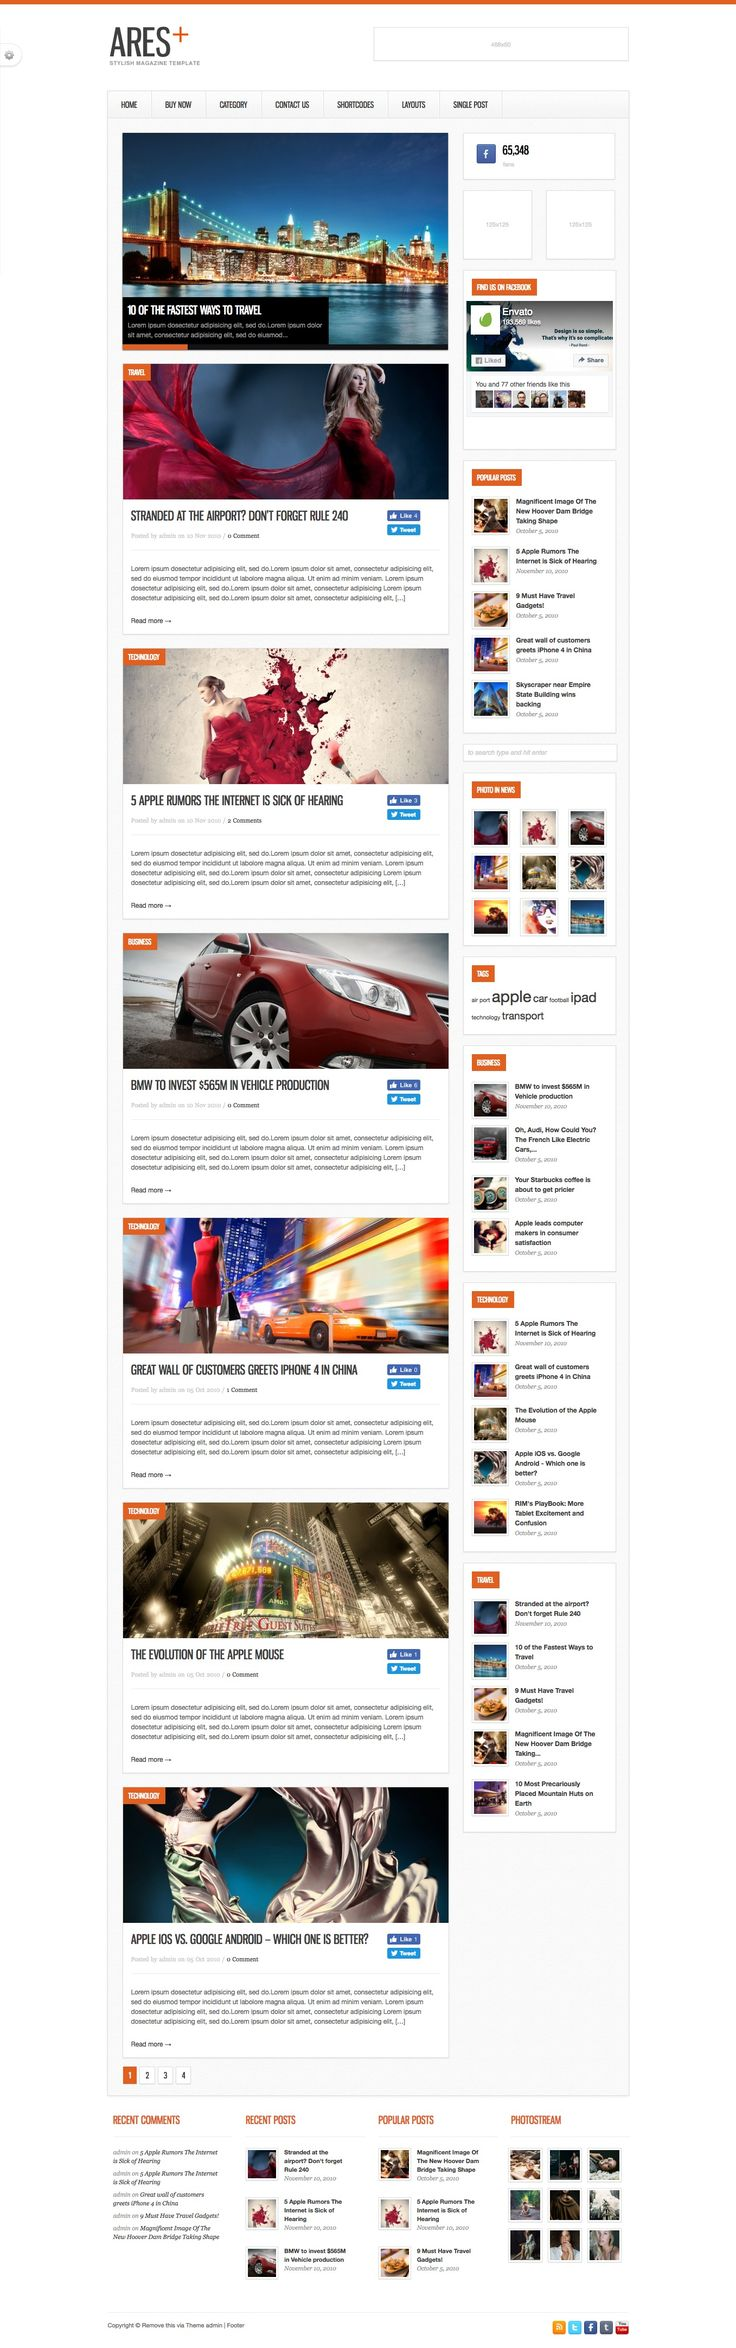 Ares is The Clean Magazine, News and Blog Template built with latest Wordpress features.